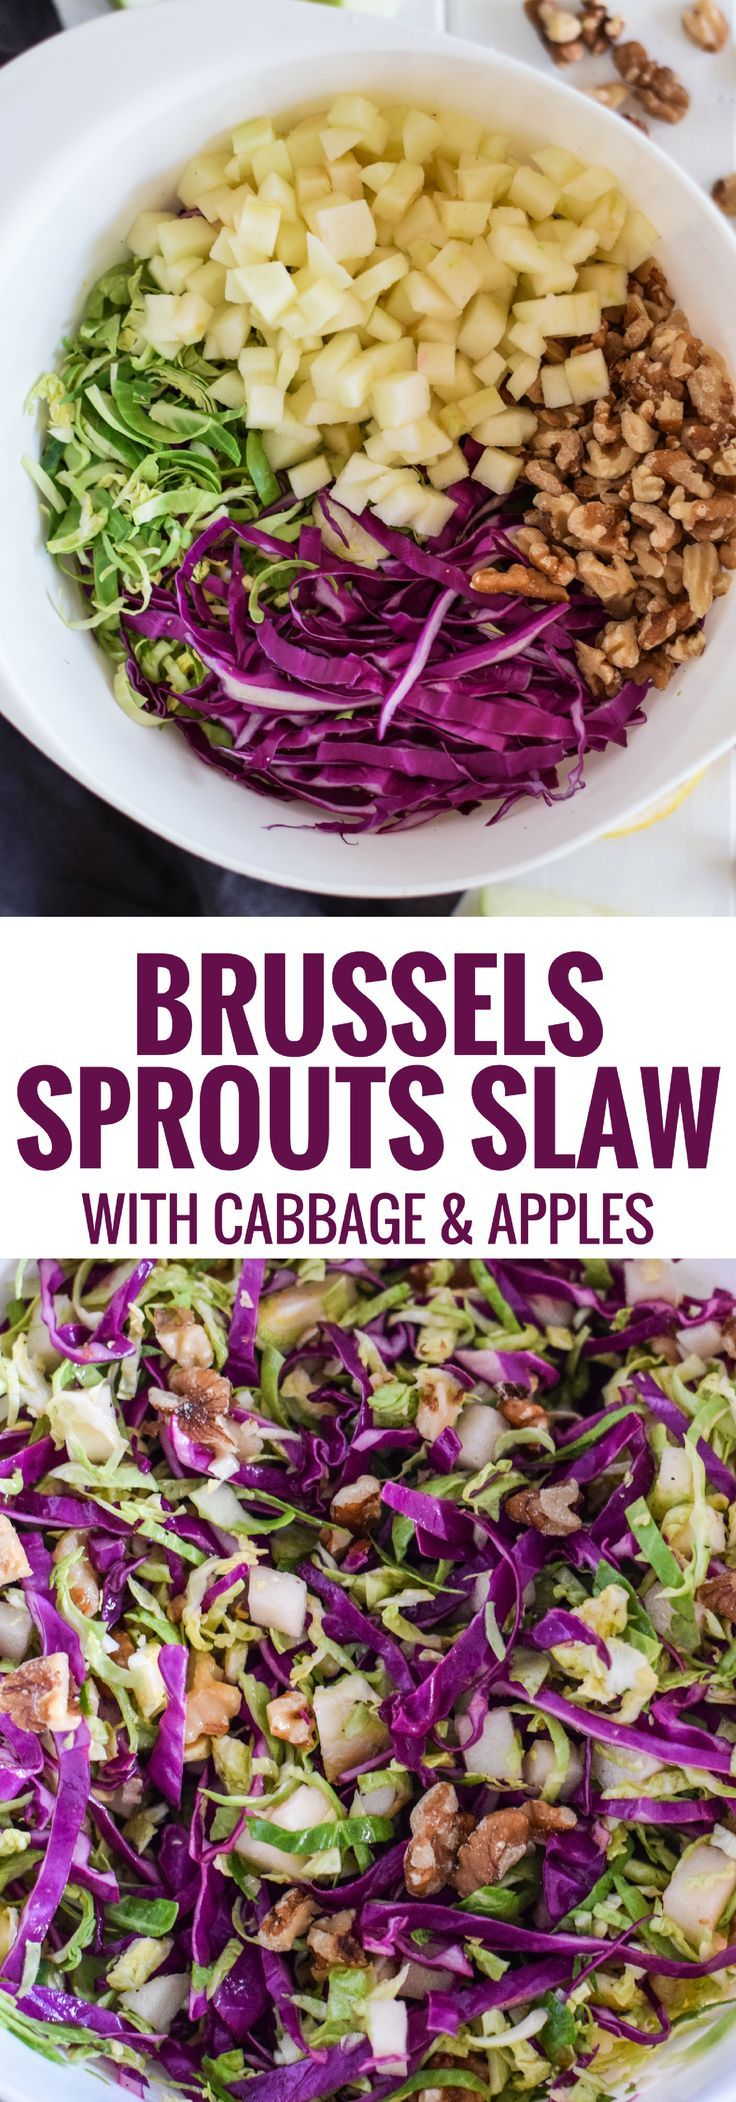 This healthy Brussels Sprouts Slaw with Cabbage and Apples is the perfect side dish for any meal. Also goes great on tacos! (gluten free, paleo, vegetarian, vegan)